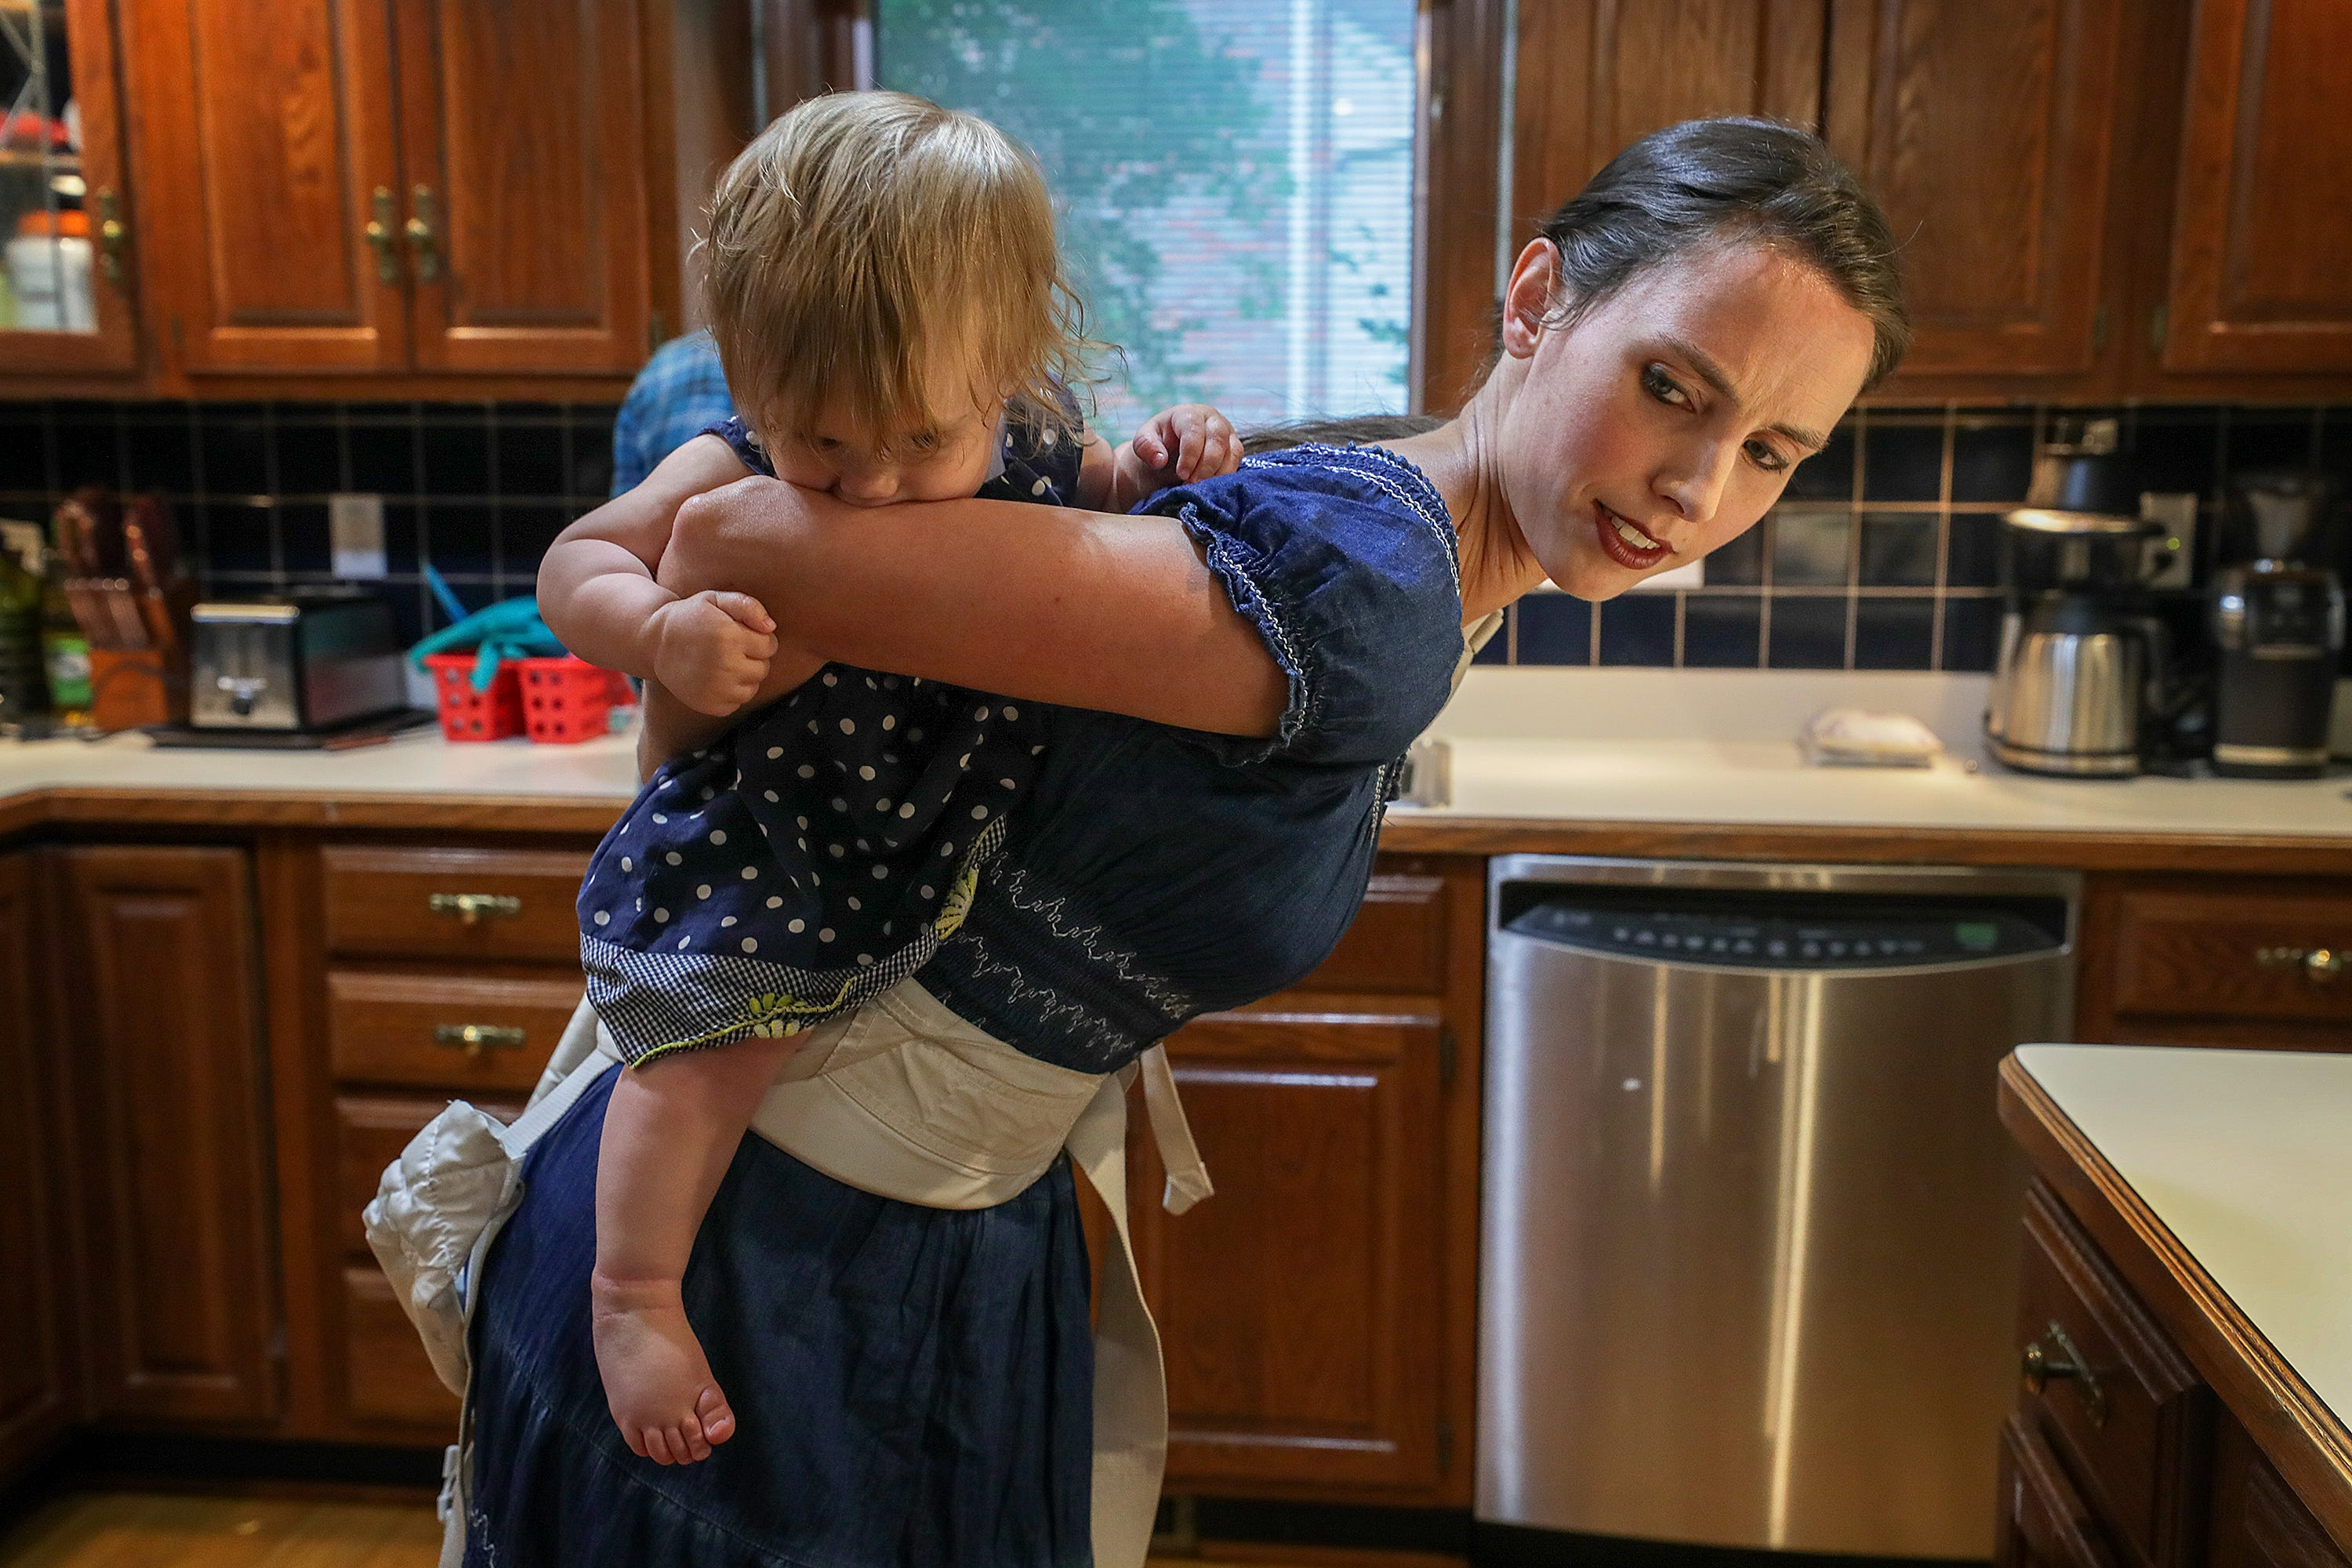 Rachael Denhollander straps her daughter, Elora, onto her back so that she can bake a cake with her other children at their former home in Louisville. May 2019